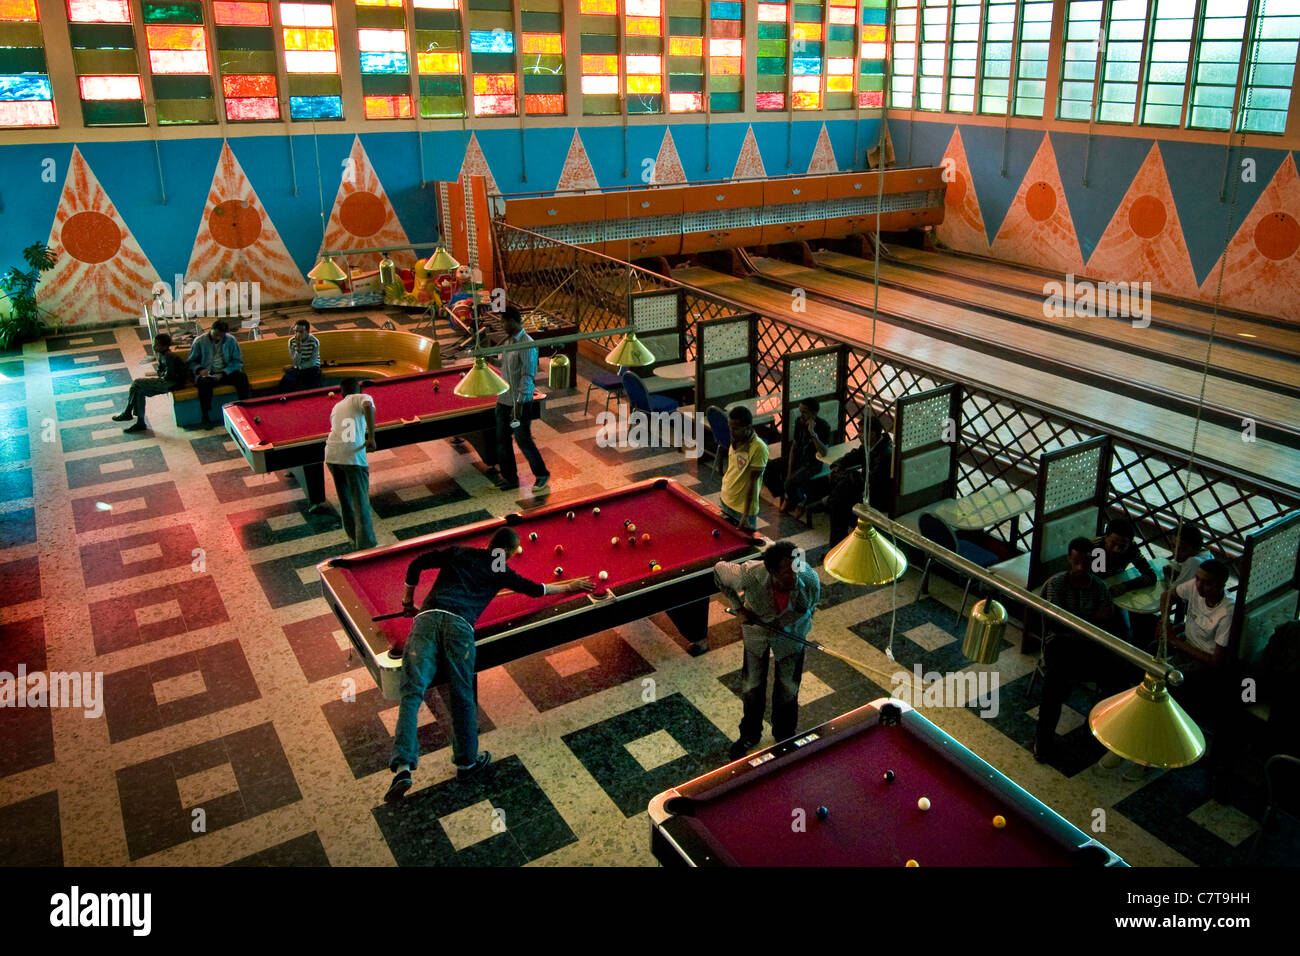 Africa, Eritrea, Asmara, the bowling club - Stock Image